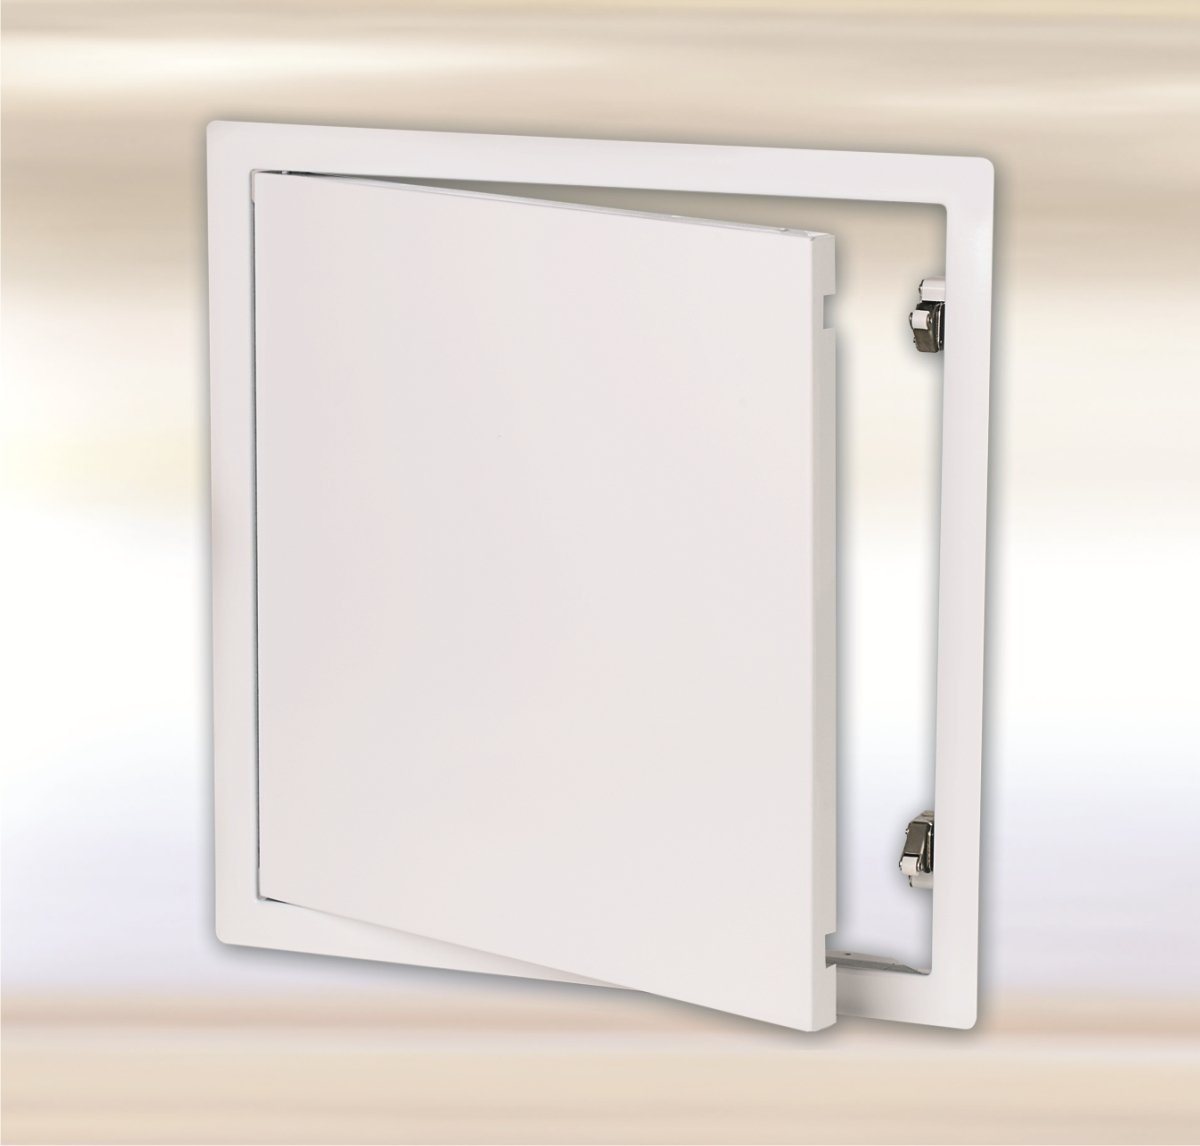 14x14 inch Metal Access Door with Touch Latch for Walls and Ceilings, B-series